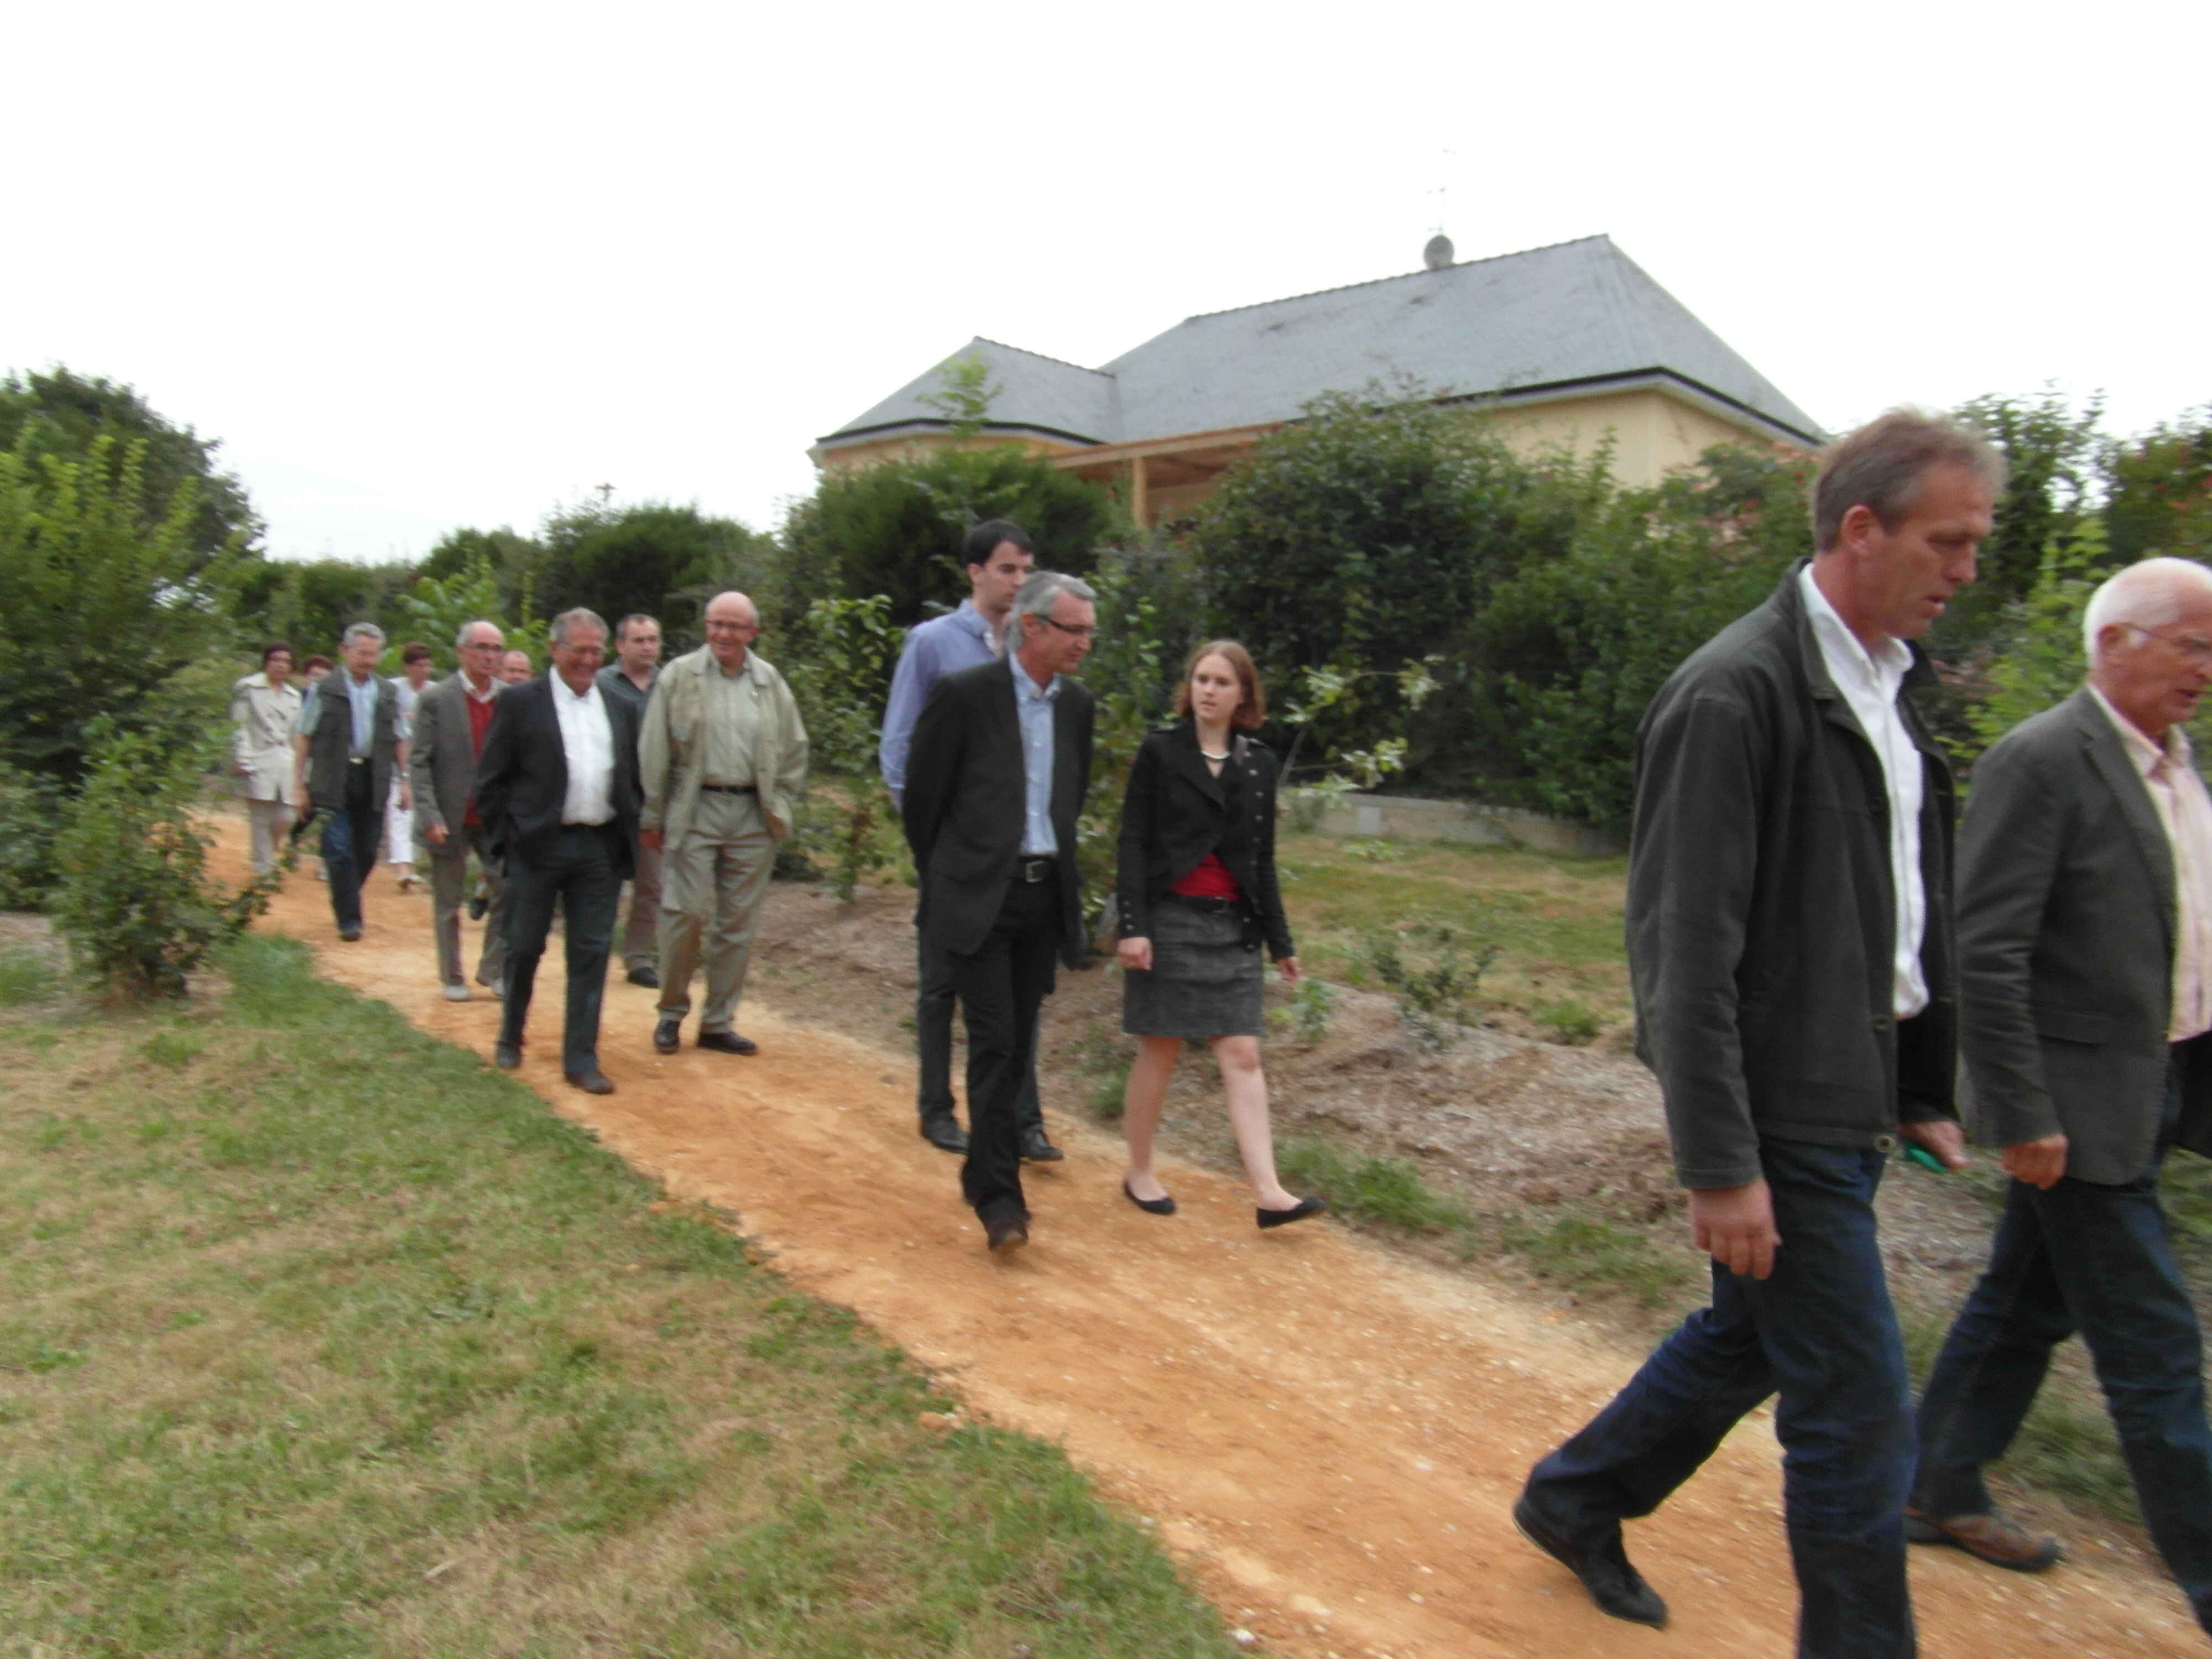 inauguration chemin nature Peuton 1 sept 12-comp4